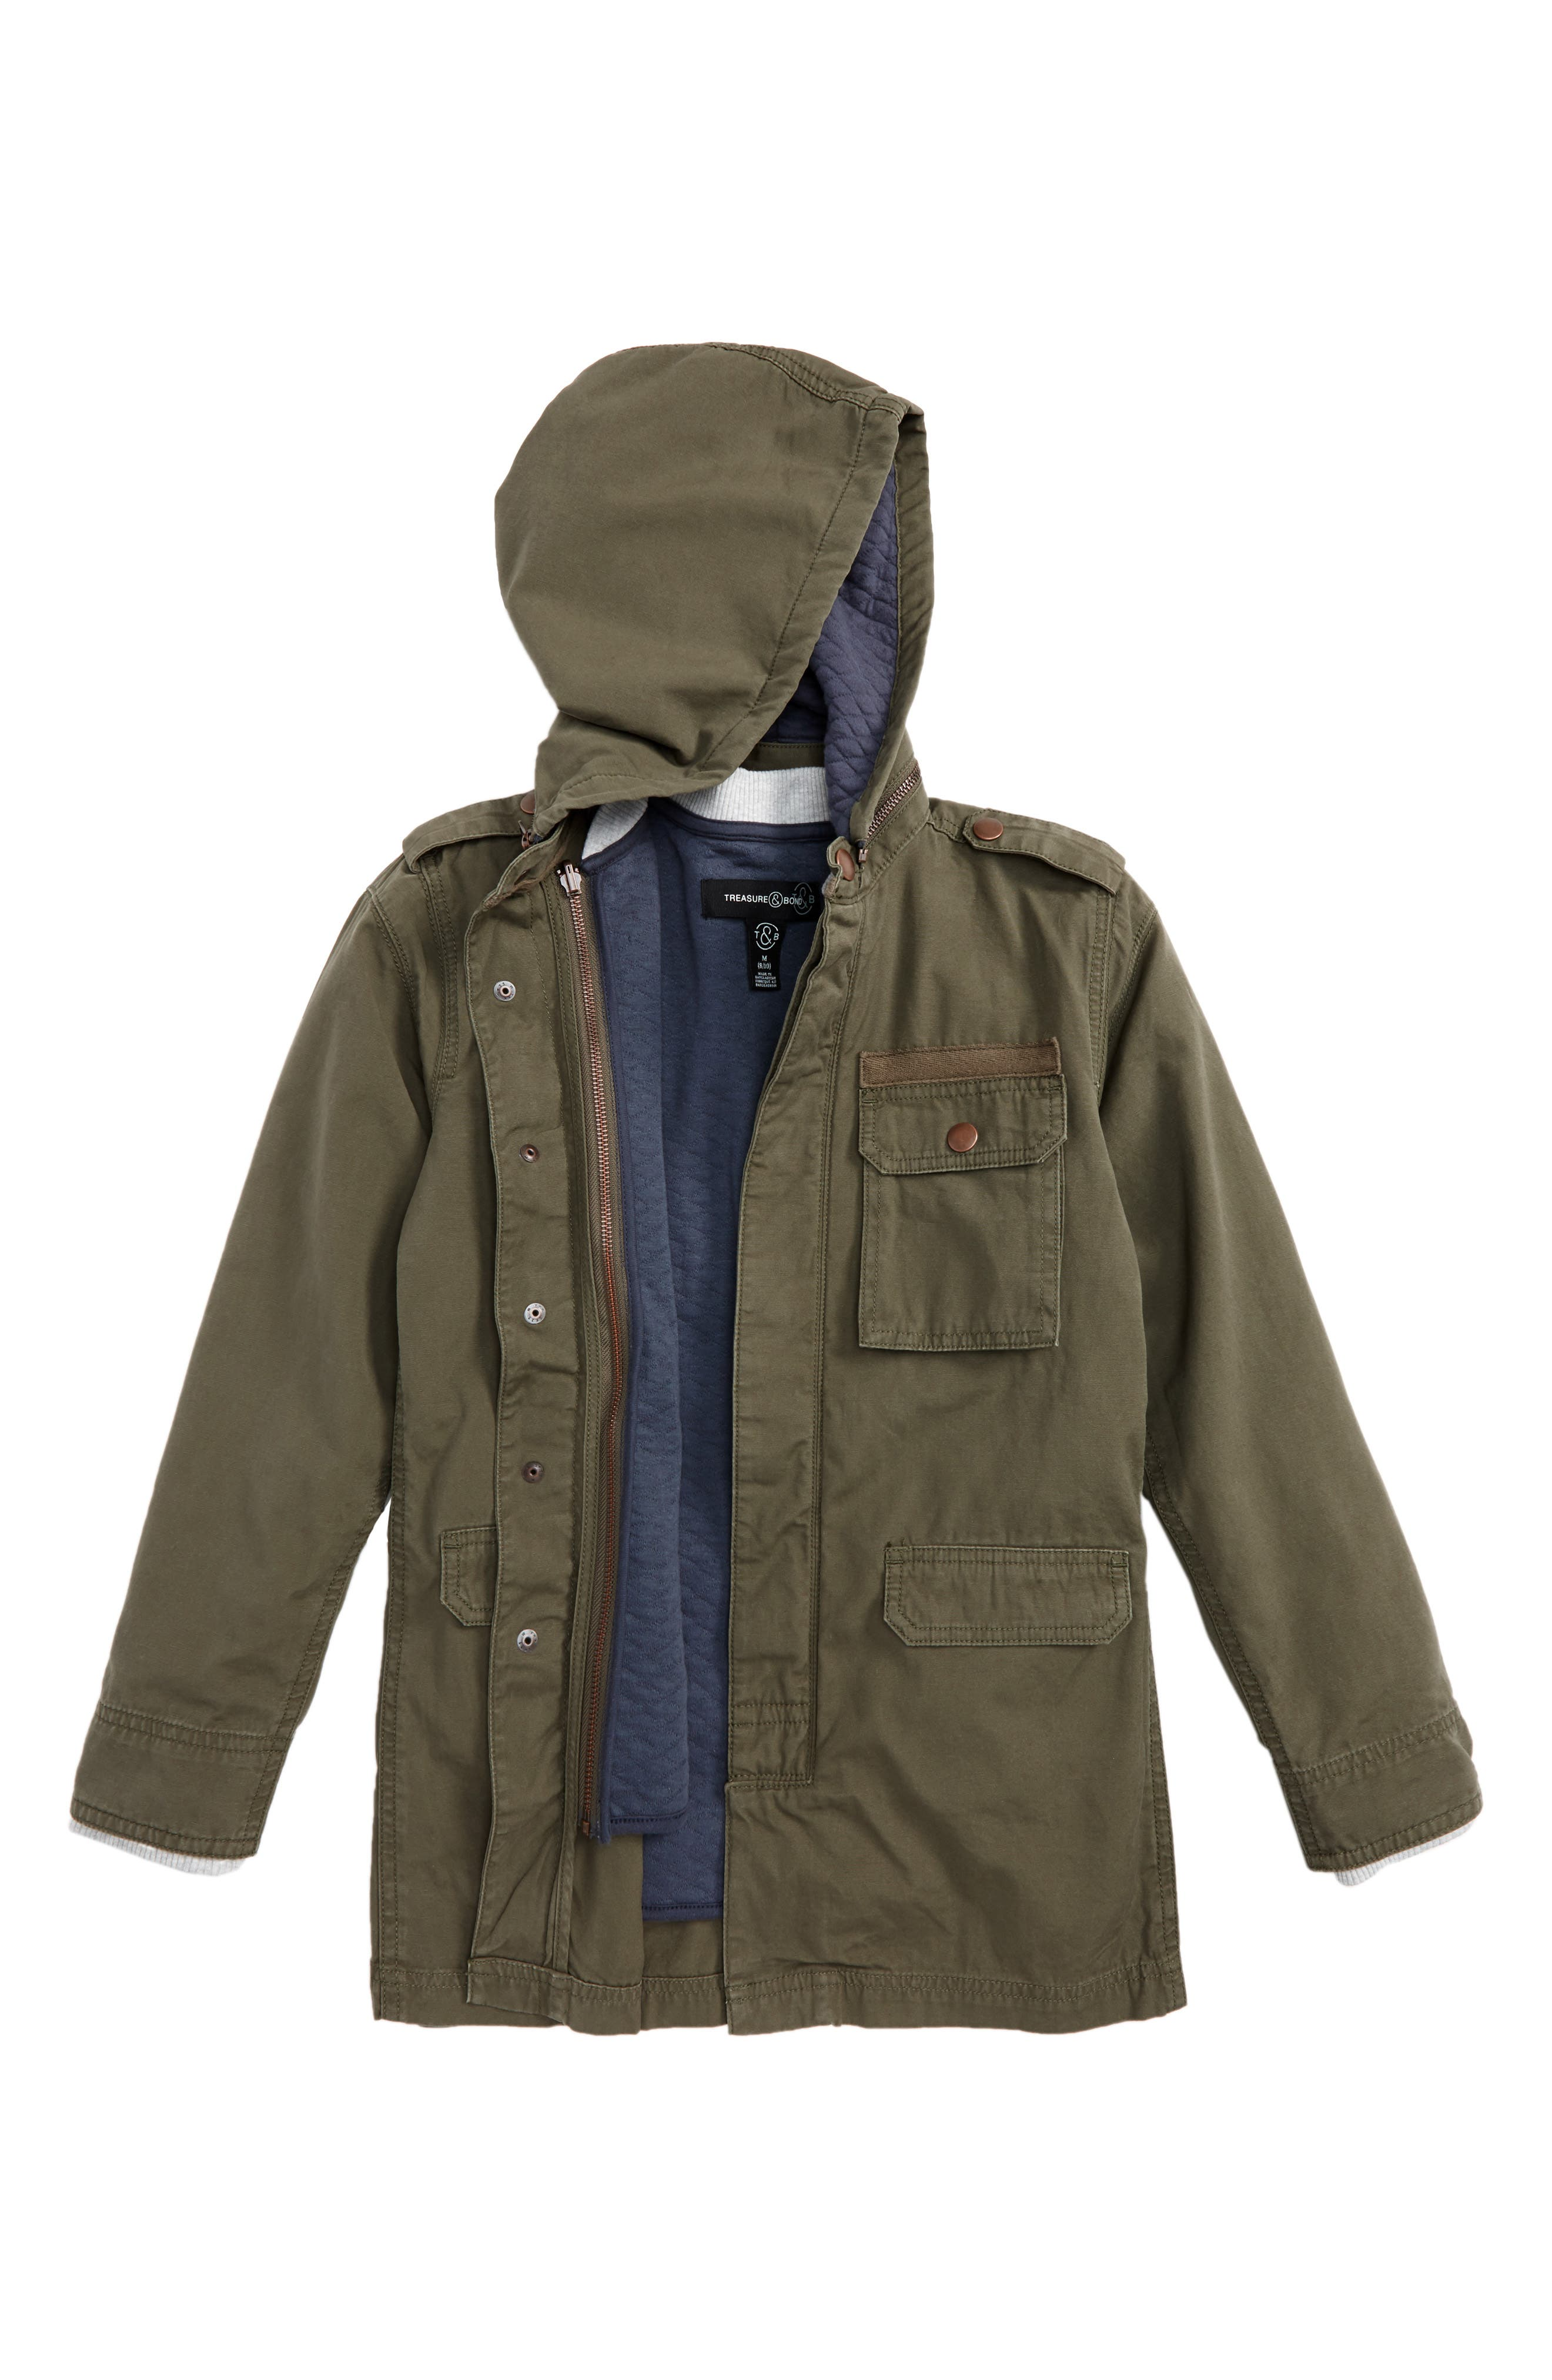 2-in-1 Hooded Military Jacket,                         Main,                         color, 311